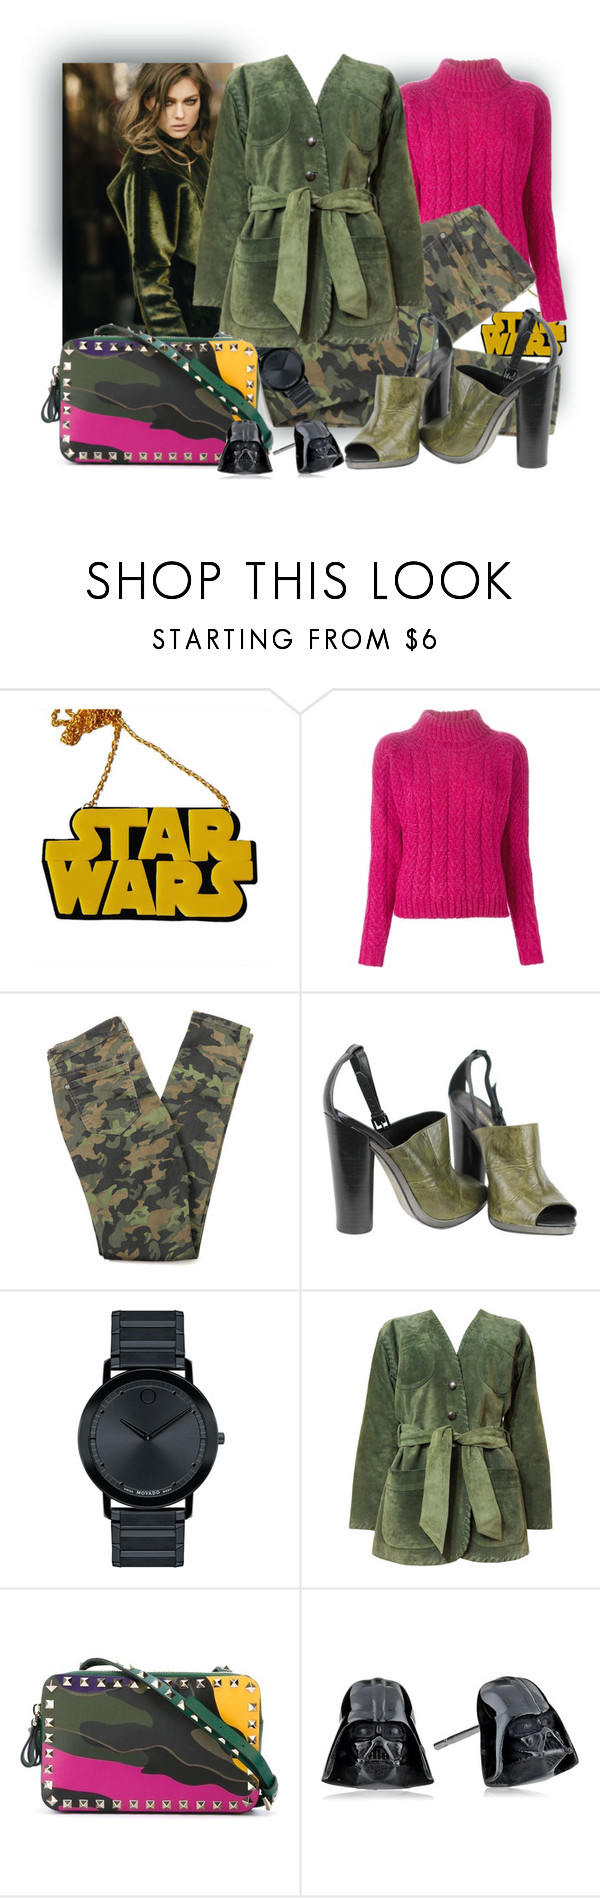 """""""I will not give up without fight"""" by tasha1973 ❤ liked on Polyvore featuring Chicnova Fashion, Cacharel, Rebecca Minkoff, Garnier, Movado, Yves Saint Laurent, Valentino, women's clothing, women's fashion and women"""